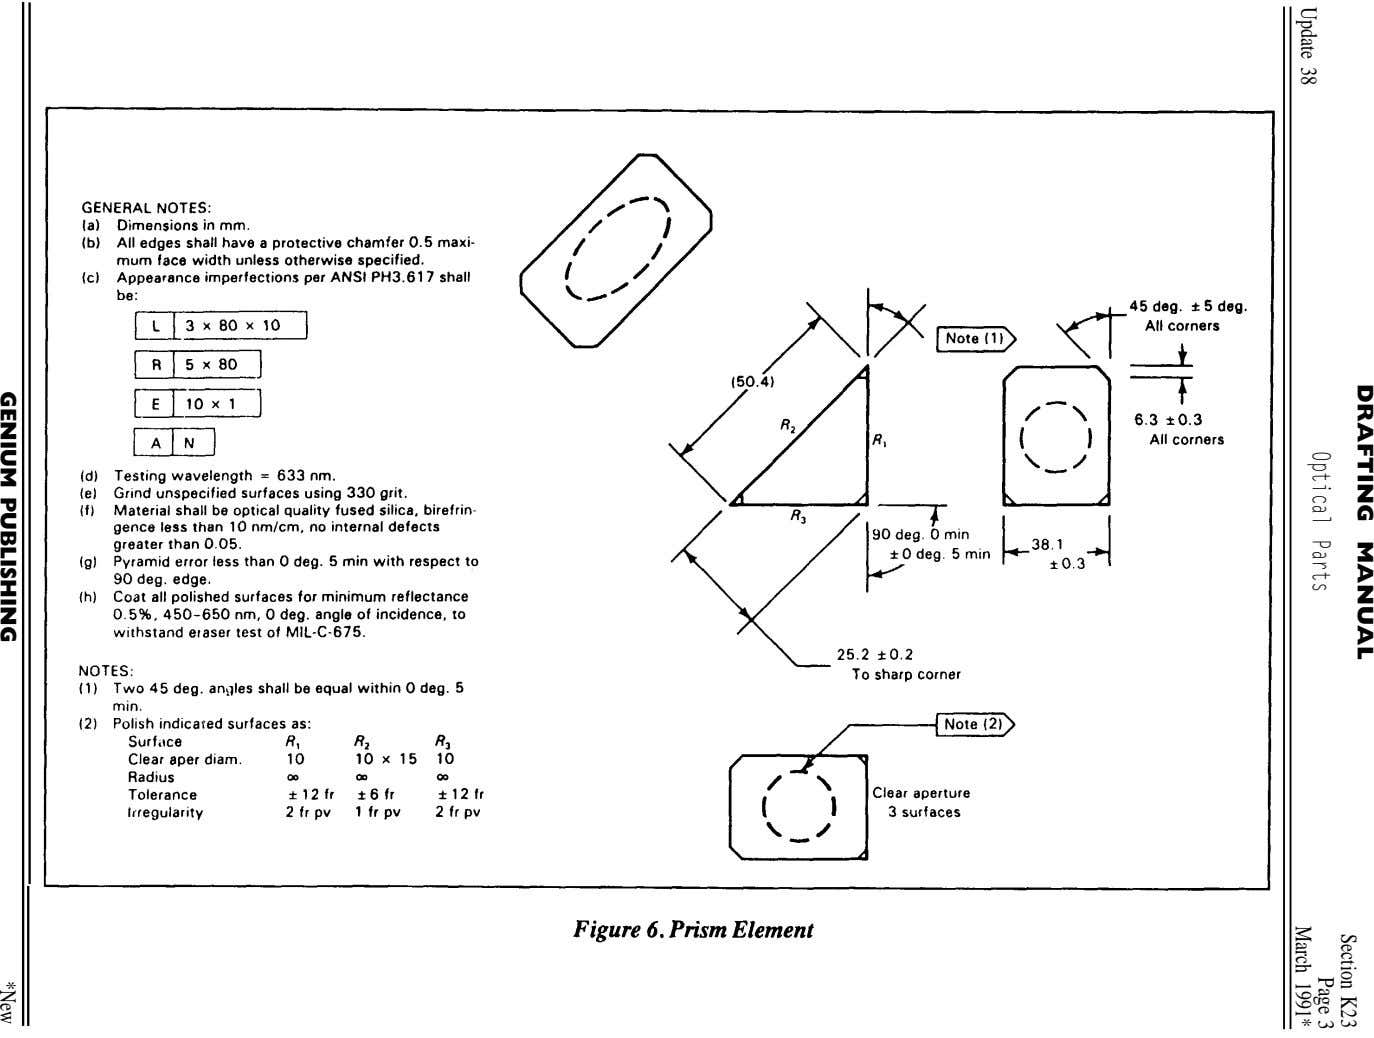 DRAFTING MANUAL Section K23 Optical Parts Update 38 March Page 1991* 3 PUBLISHING *NewGENIUM